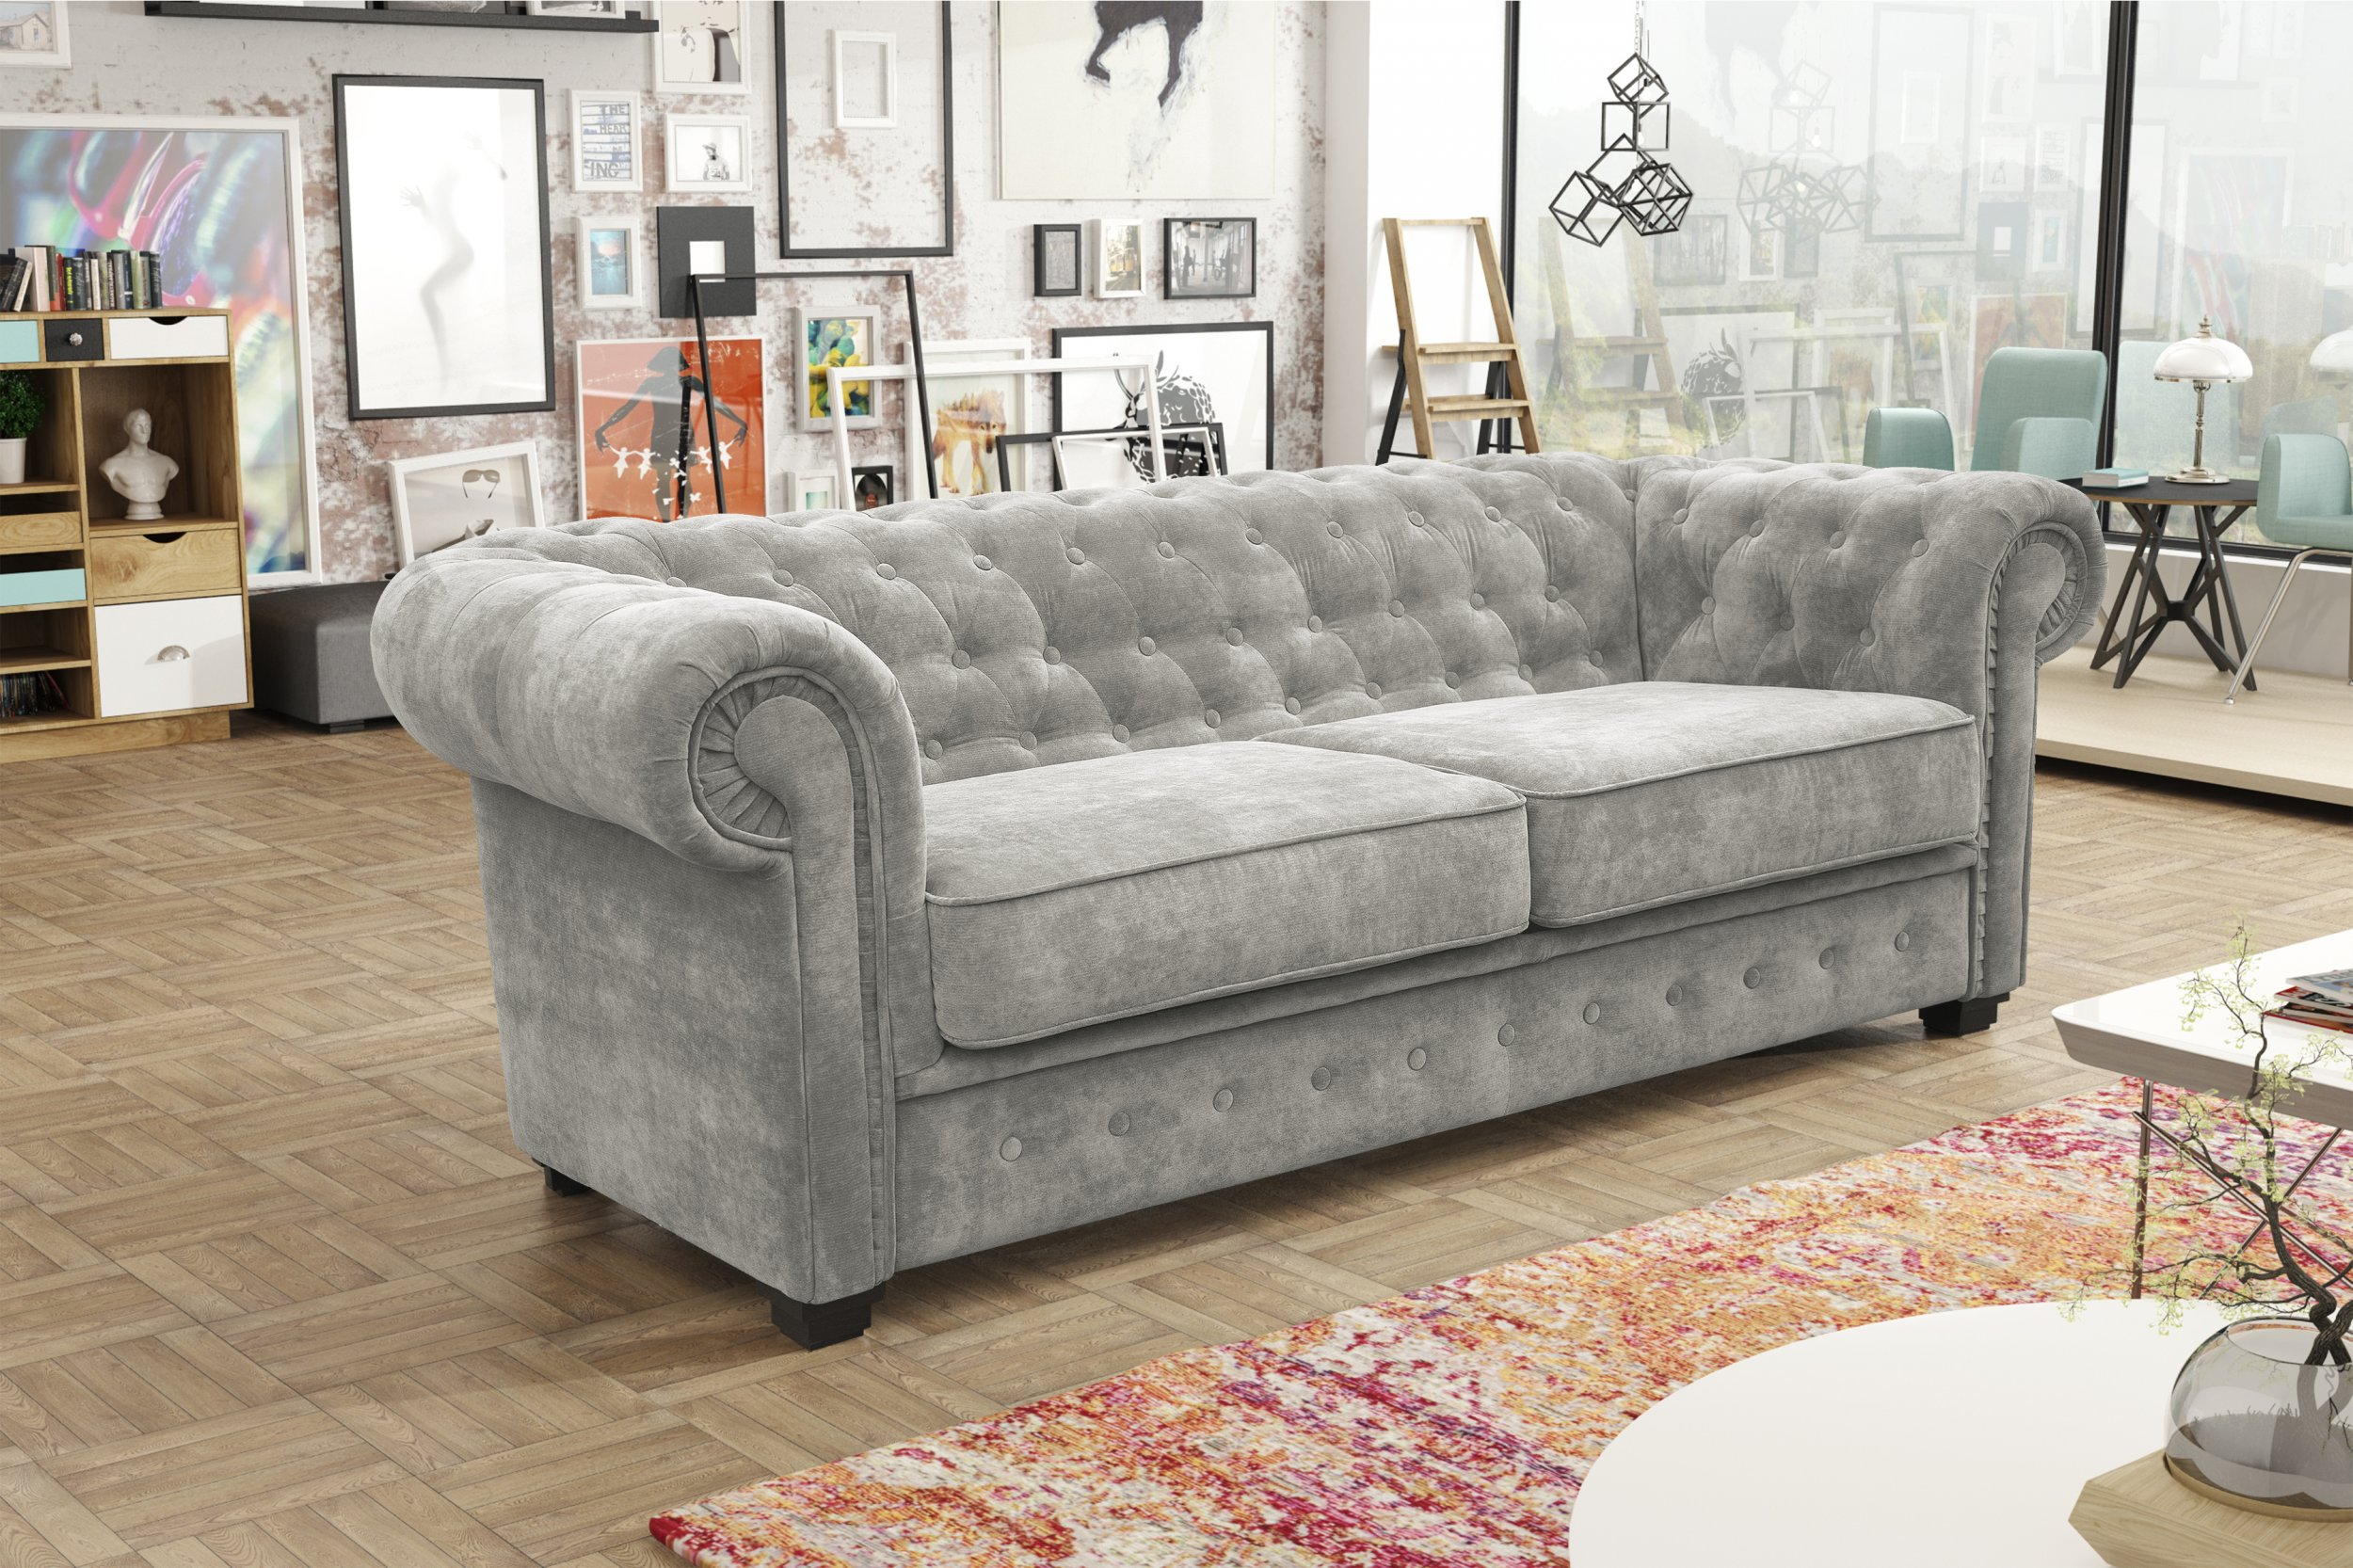 cheapest sofas in ireland top sleeper indiana 3 432 sofa set grey fabric the clearance zone